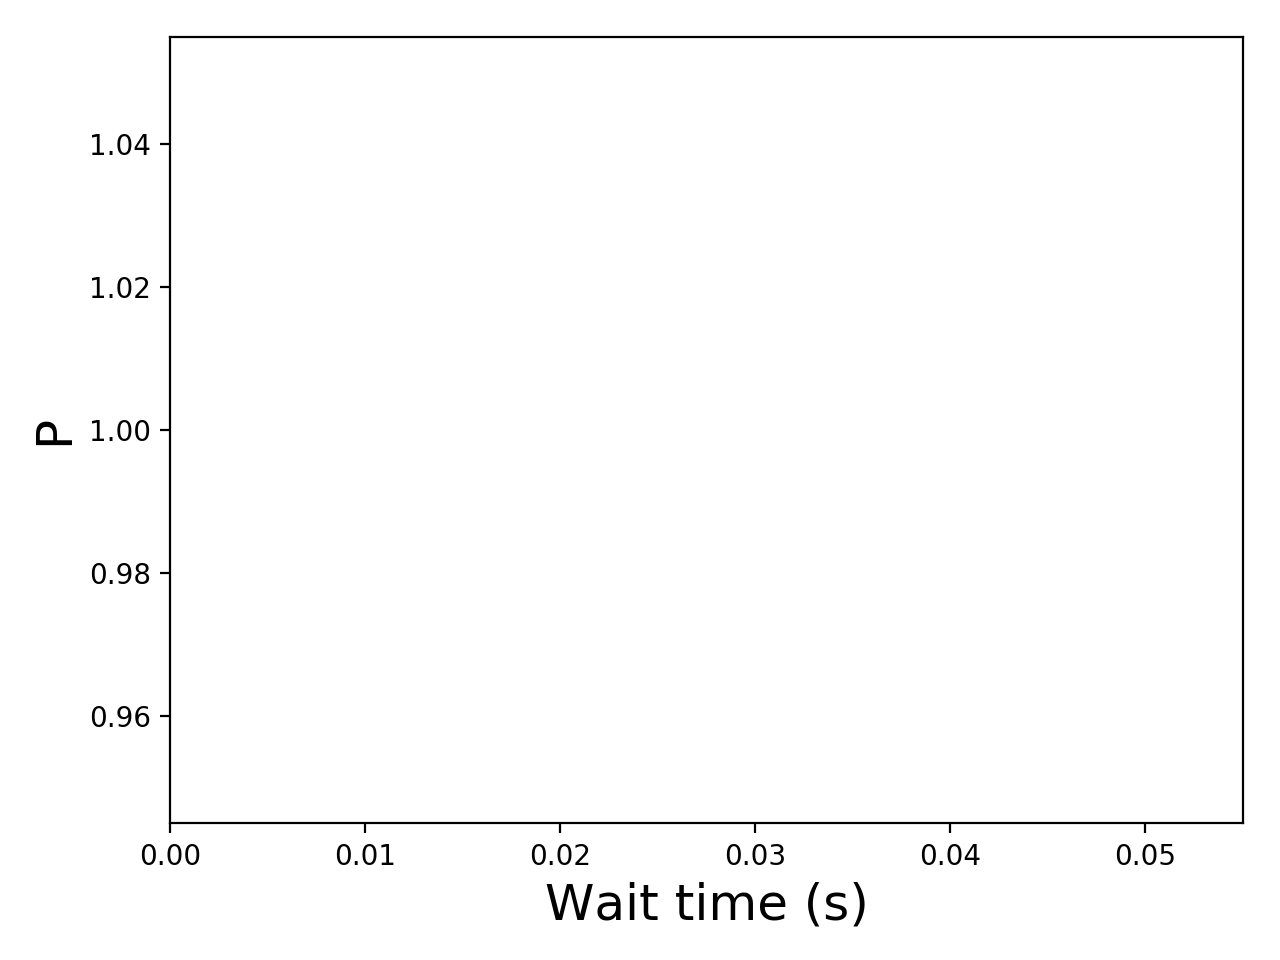 Task wait time CDF graph for the askalon-new_ee12 trace.